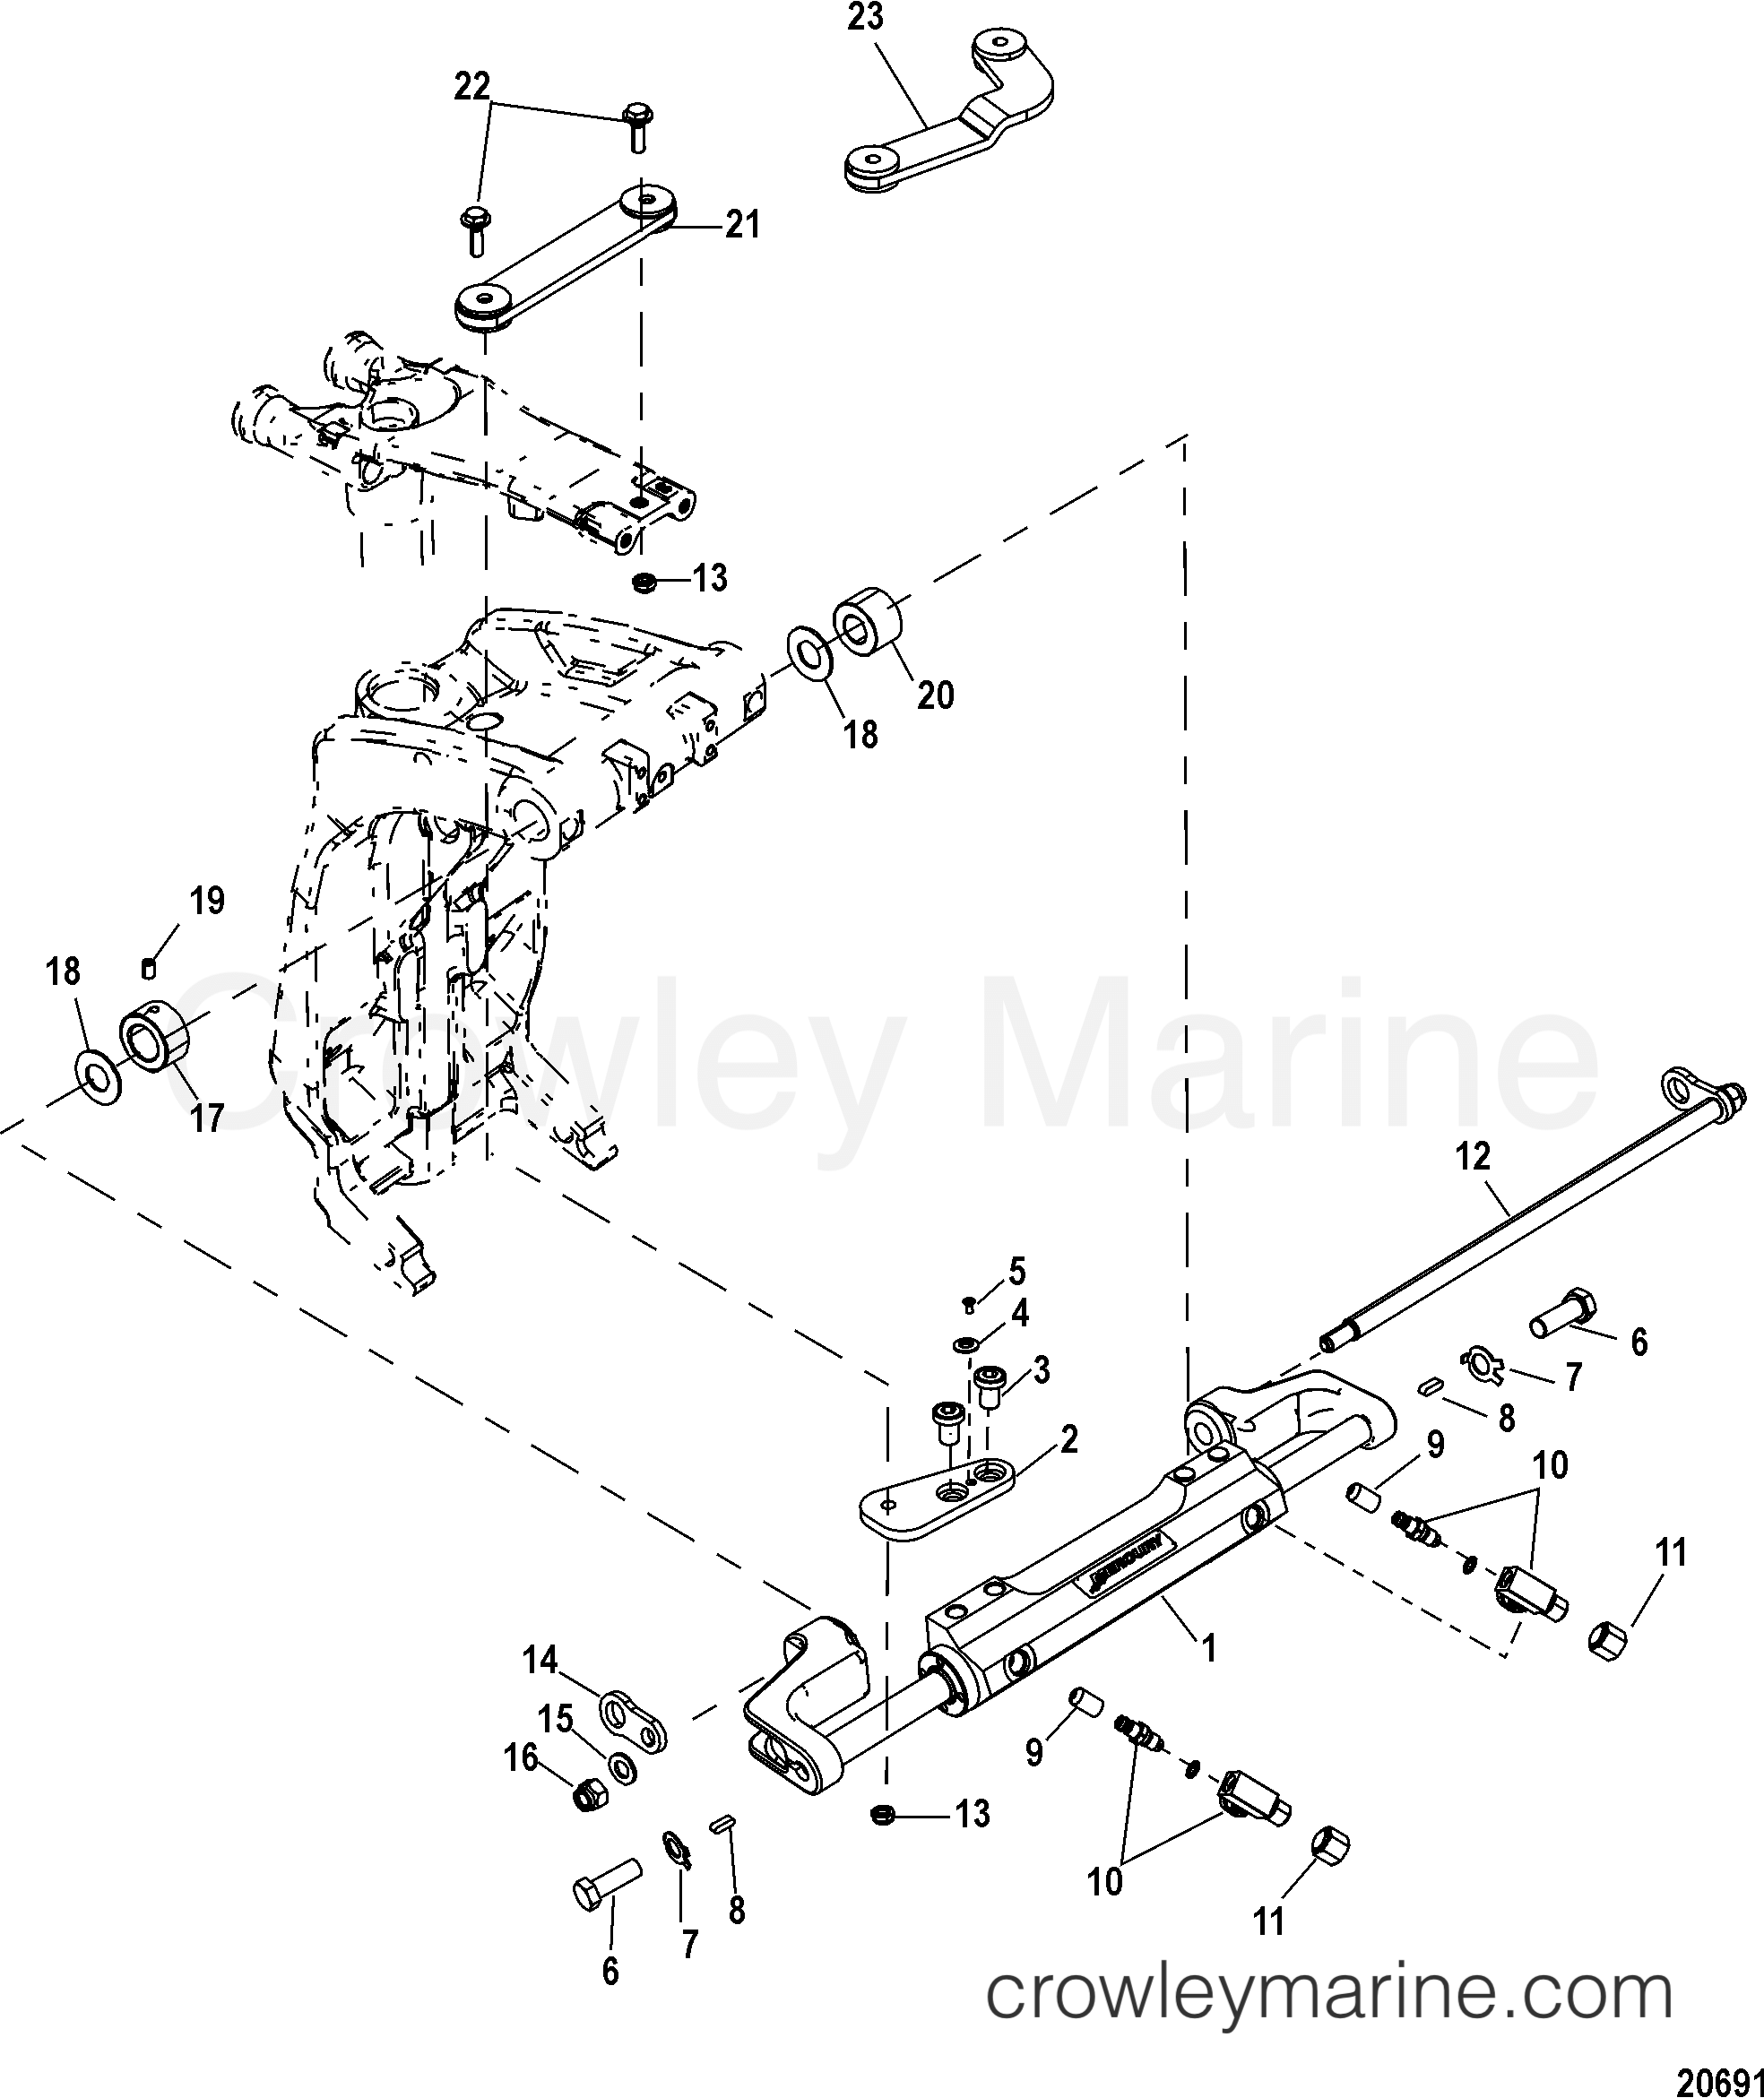 steering actuator assembly 898349a01